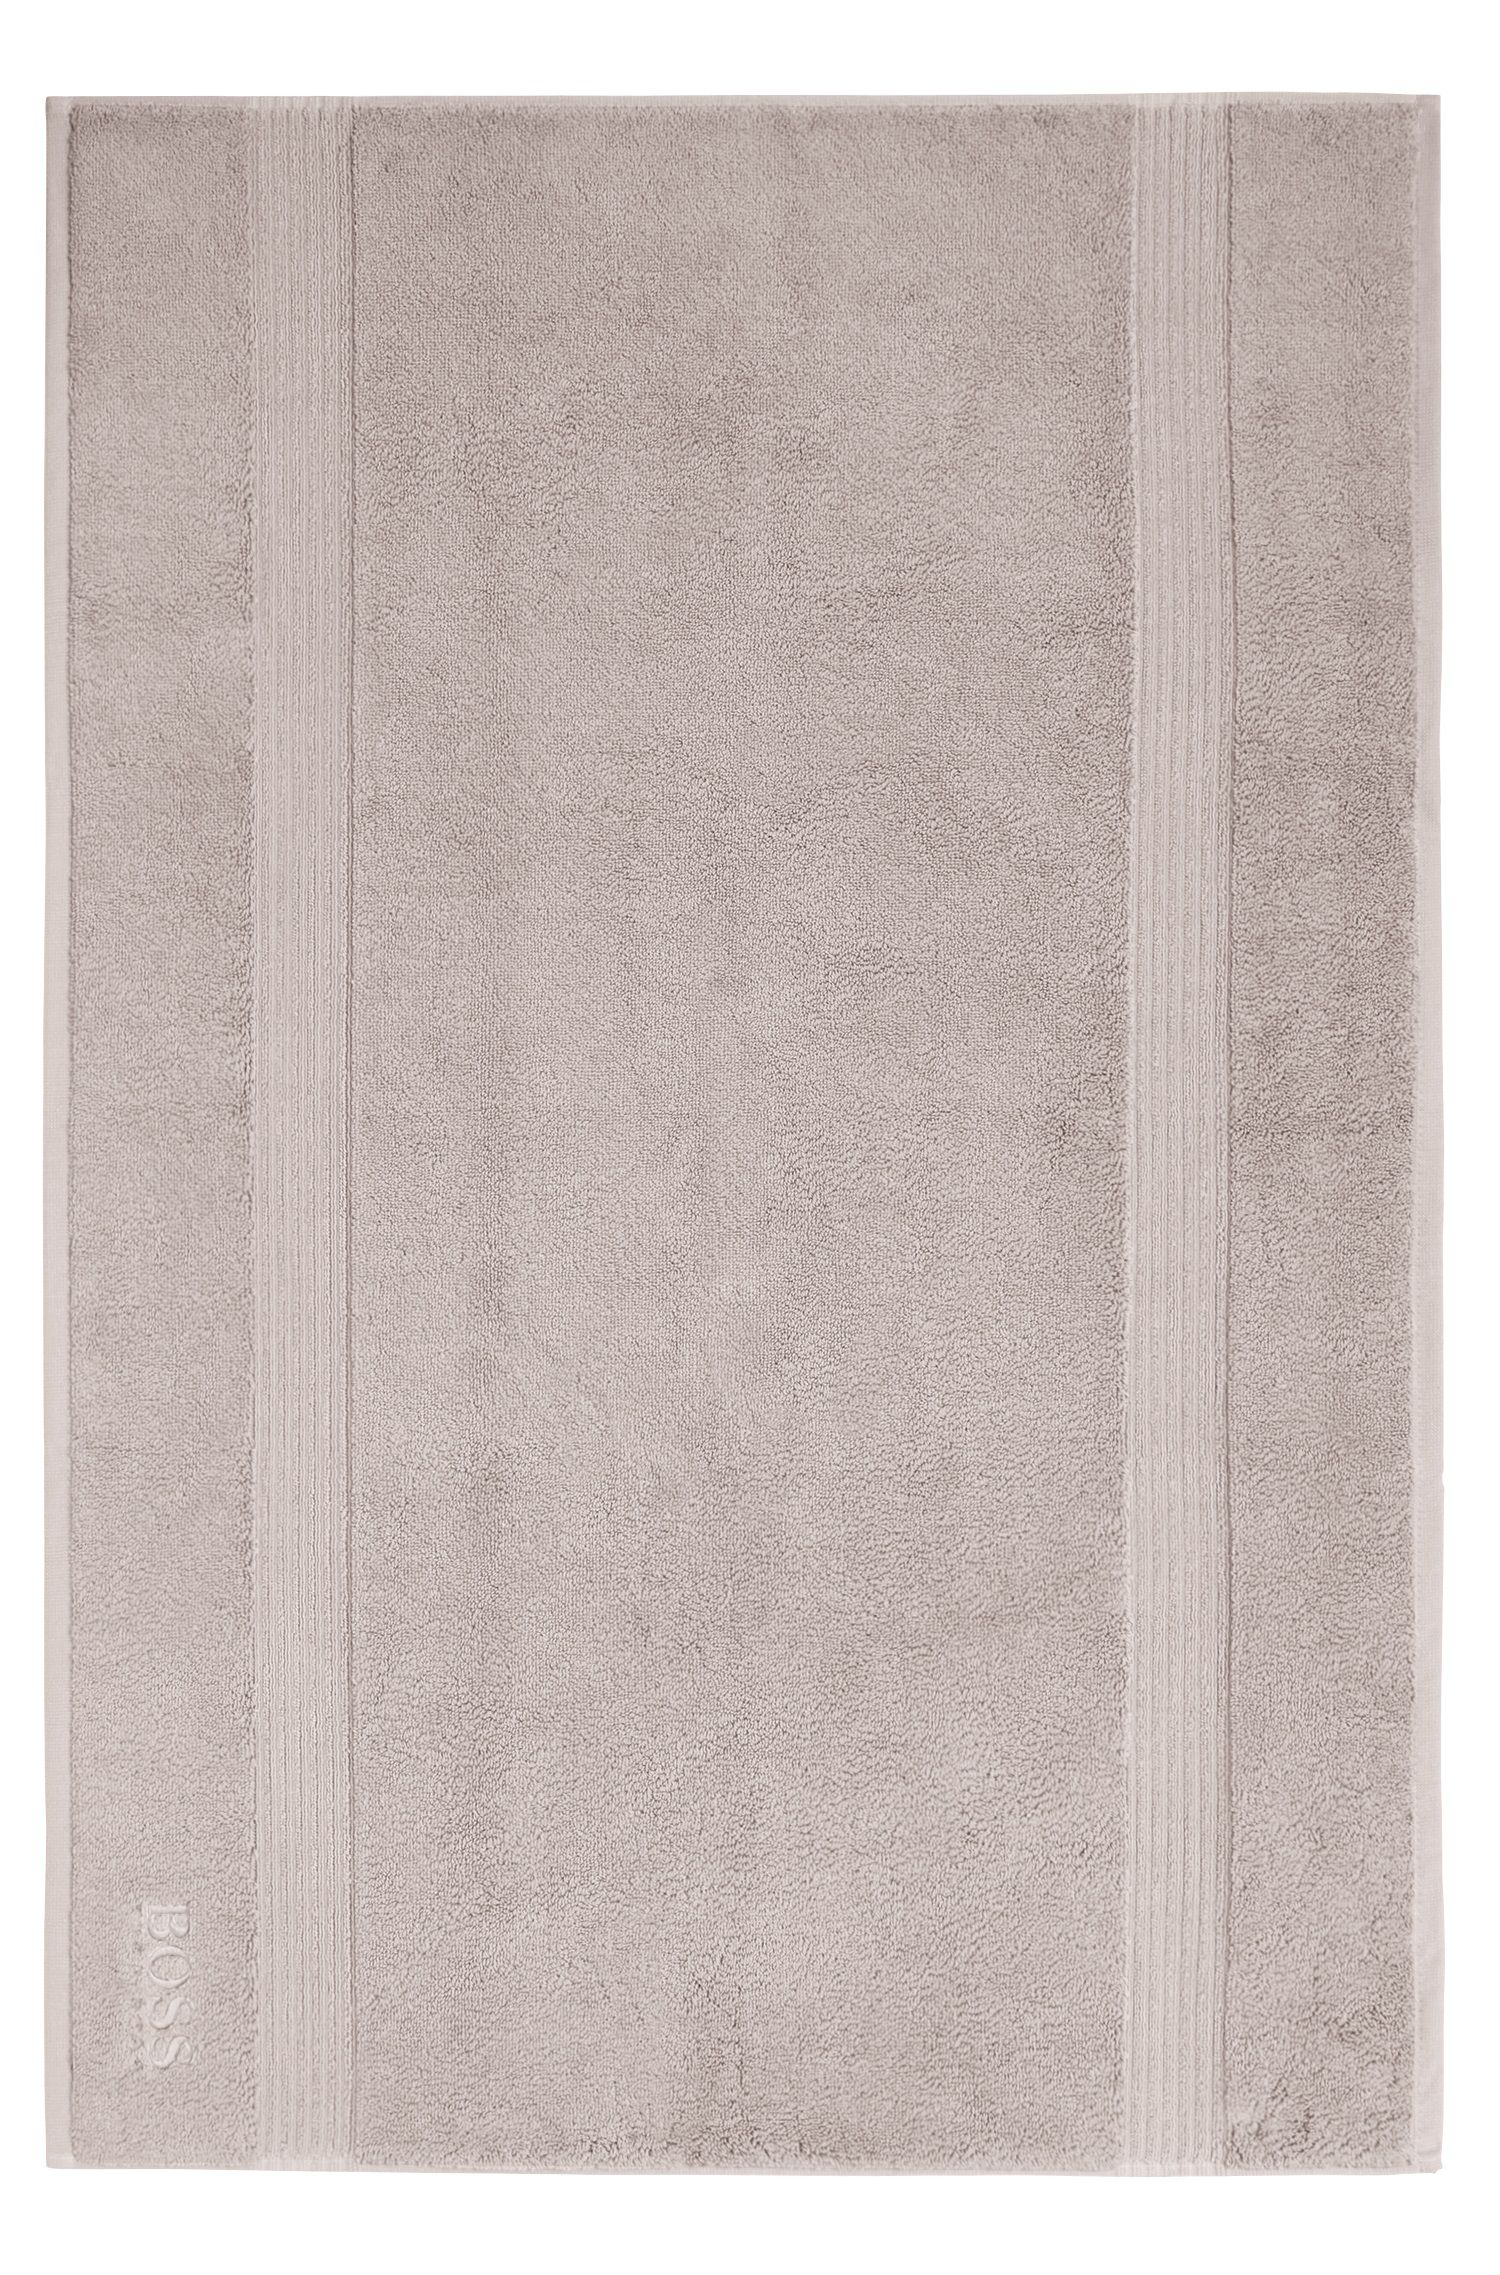 Bath mat in combed Aegean cotton with ribbed border